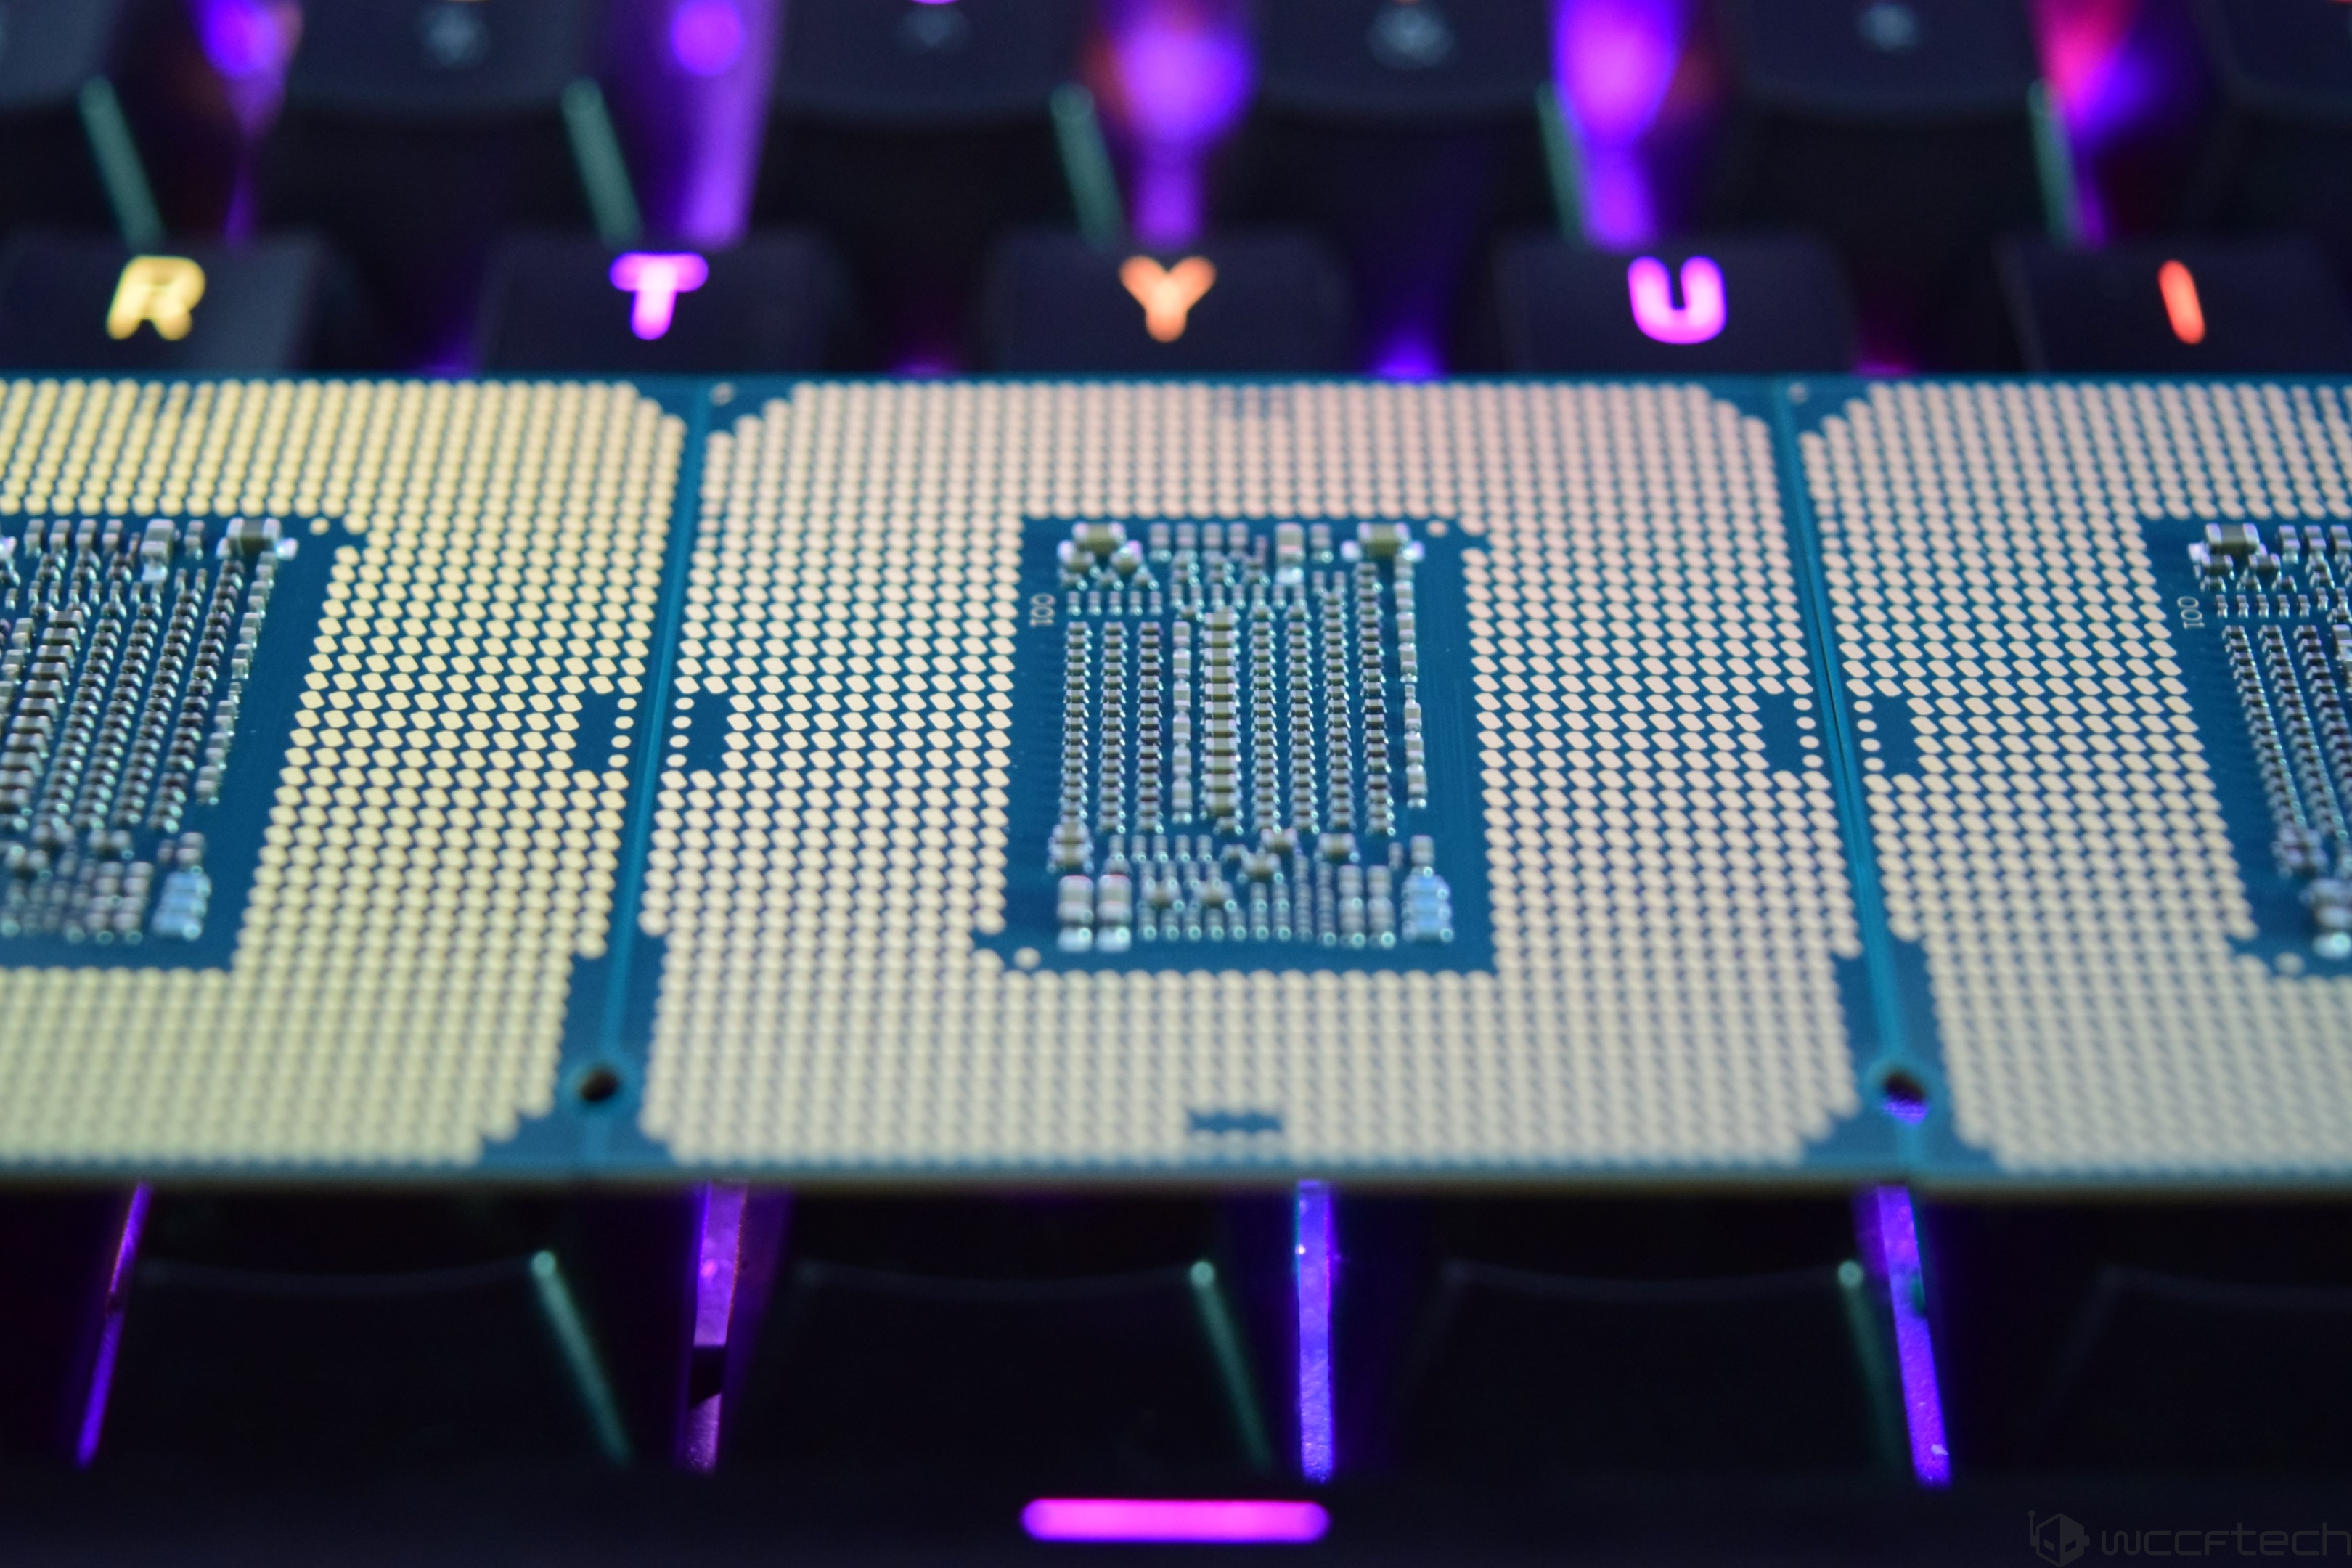 Intel Core i7-8700K, Core i5-8600K, Core i5-8400 CPU Review